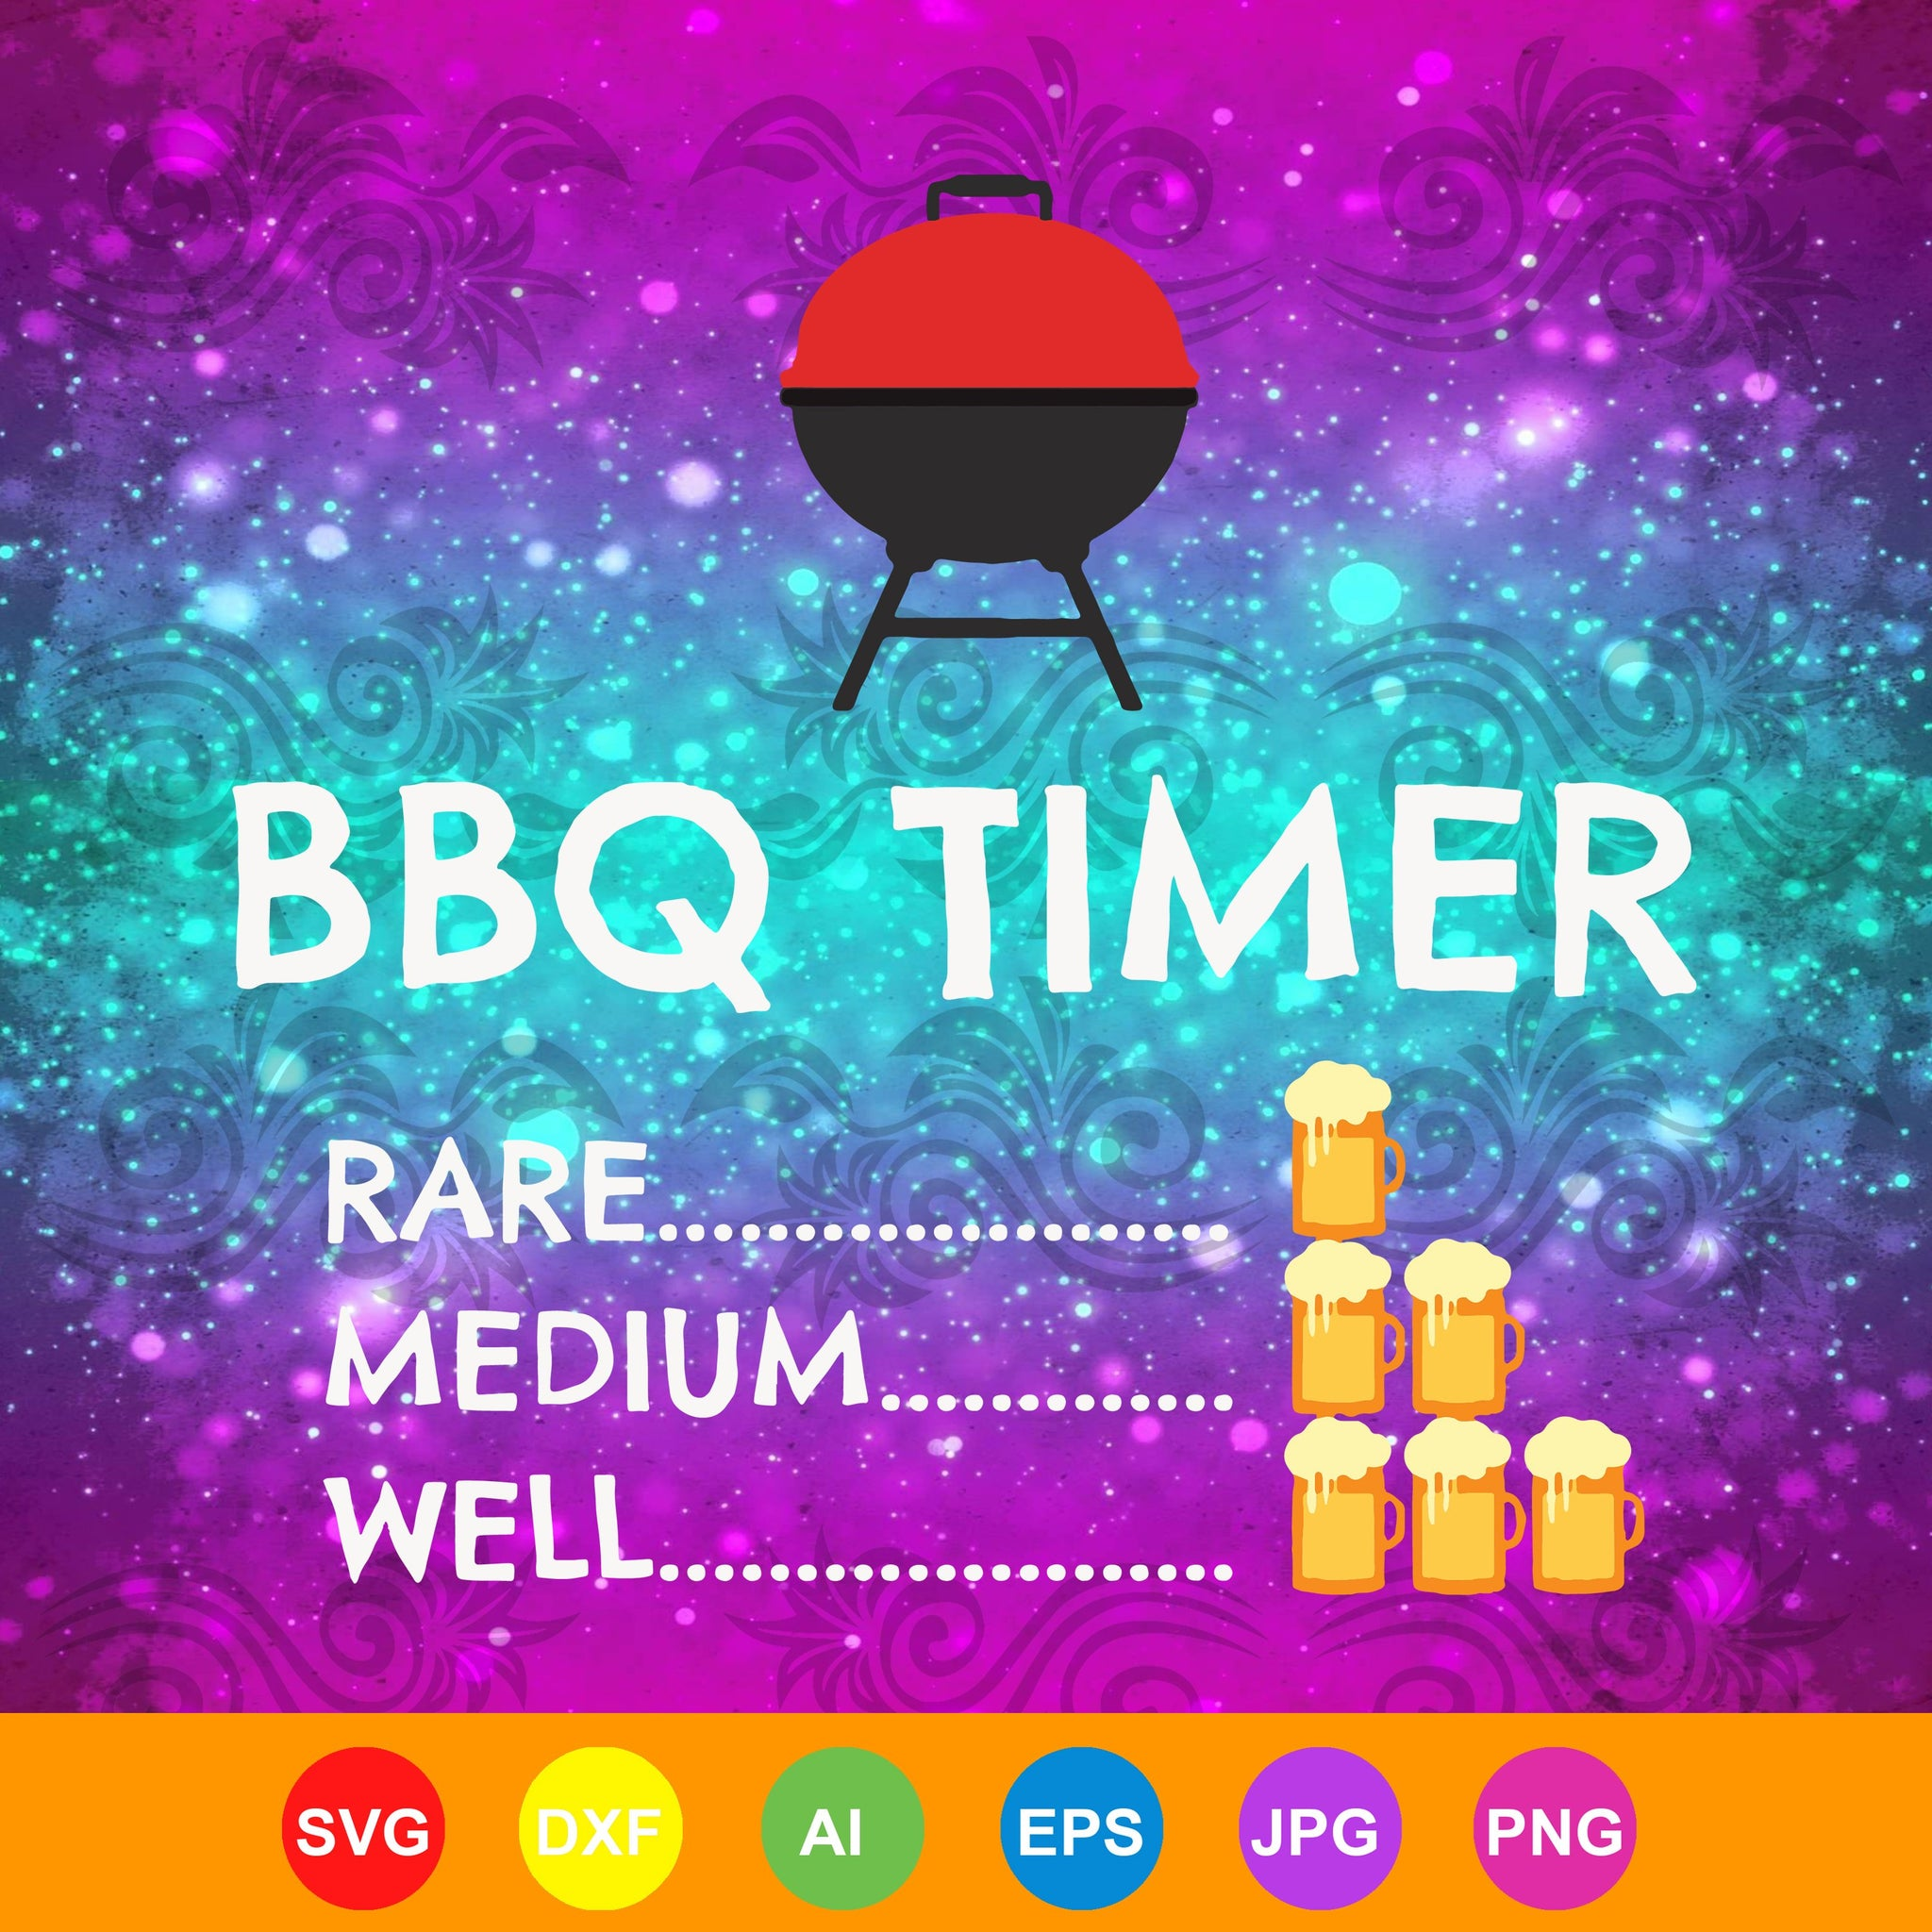 Timer barbecue shirt, barbecue, bbq shirt, bbq timer gift, trending svg, Files For Silhouette, Files For Cricut, SVG, DXF, EPS, PNG, Instant Download